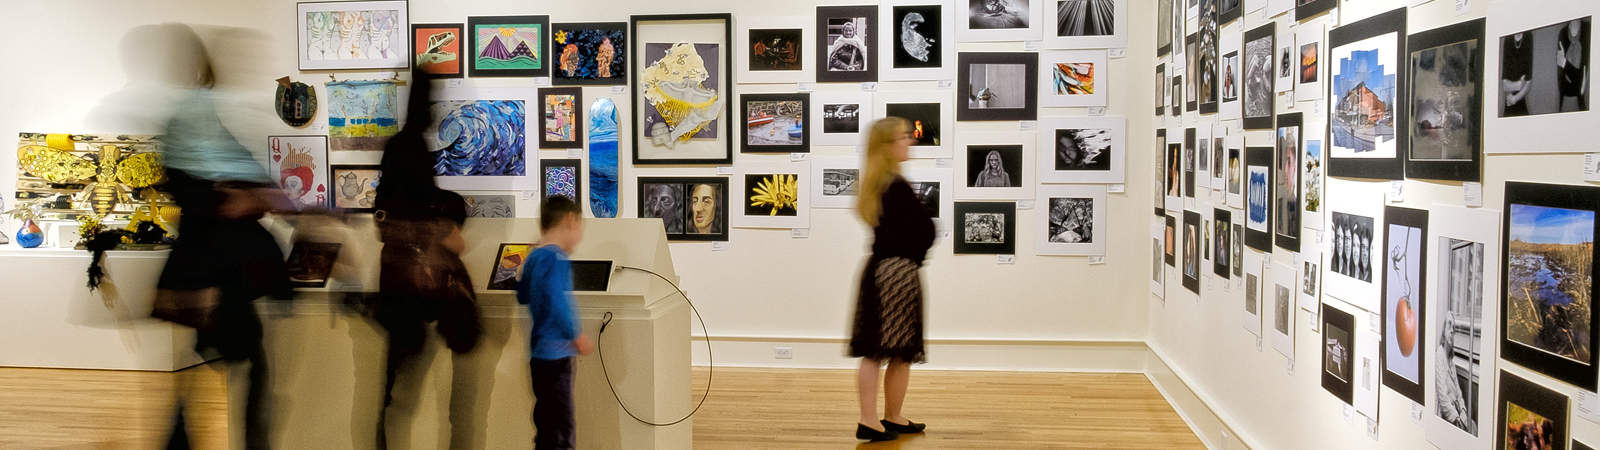 Patrons browse the 2019 Scholastic Art and Writing displays at the Fort Wayne Museum of Art. <span class=&apos;image-credits&apos;>By Ray Steup</span>